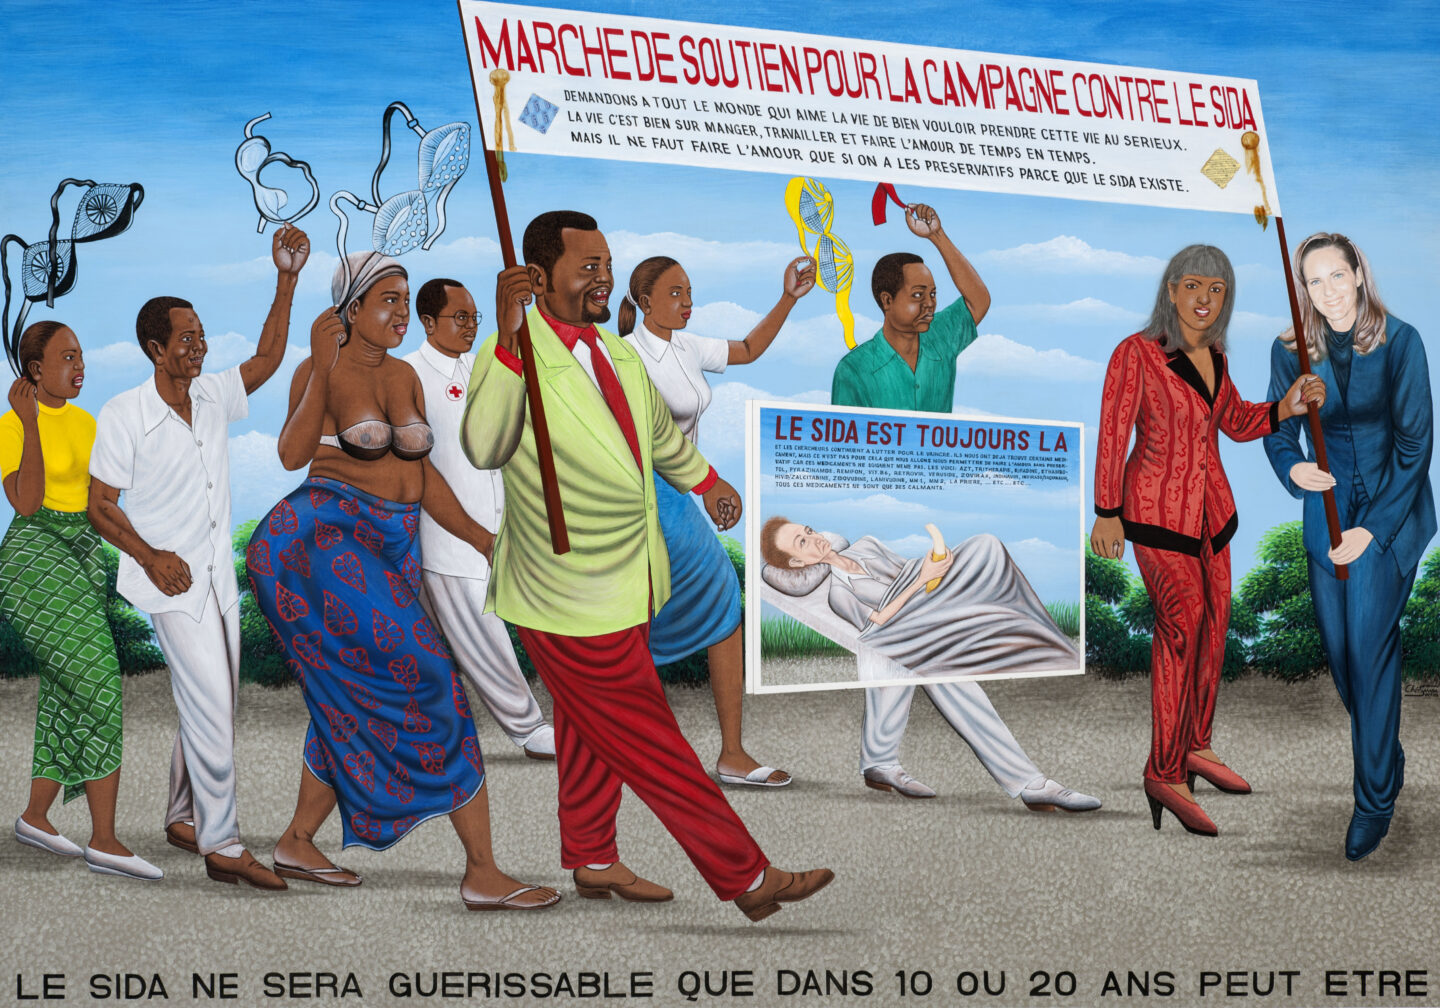 Exhibition View Groupshow «United by AIDS; view on Chéri Samba, La Marche de soutien contre le SIDA, 2006, Collection Lucien Bilinelli, Brussels / Milan» at Migros Museum, Zurich, 2019